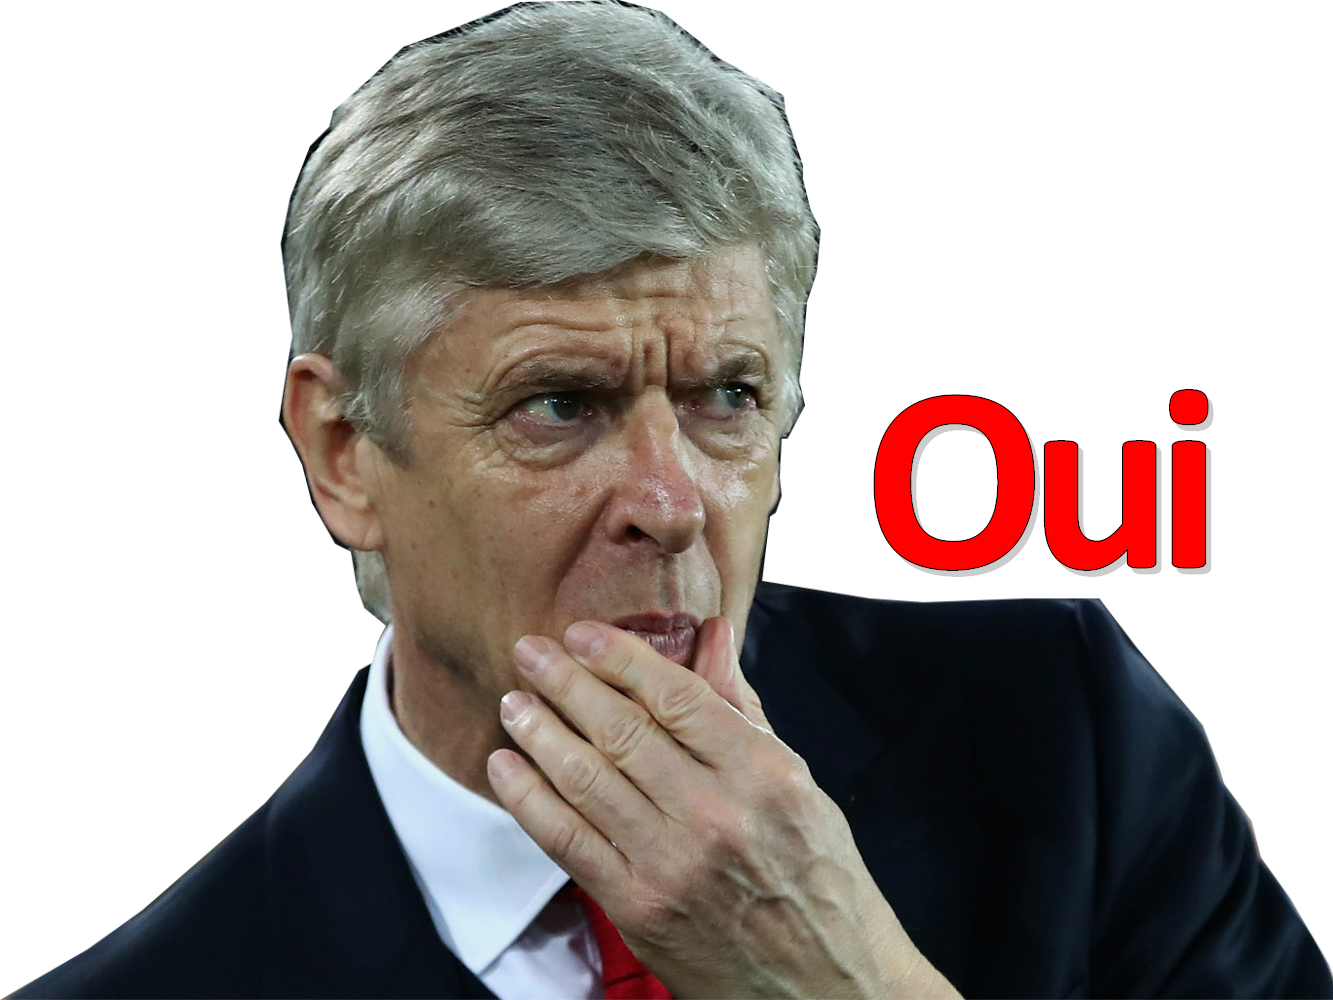 Sticker arsene wenger arsenal football perplexe doute retrospection question ok hesitation indecision crainte incertain